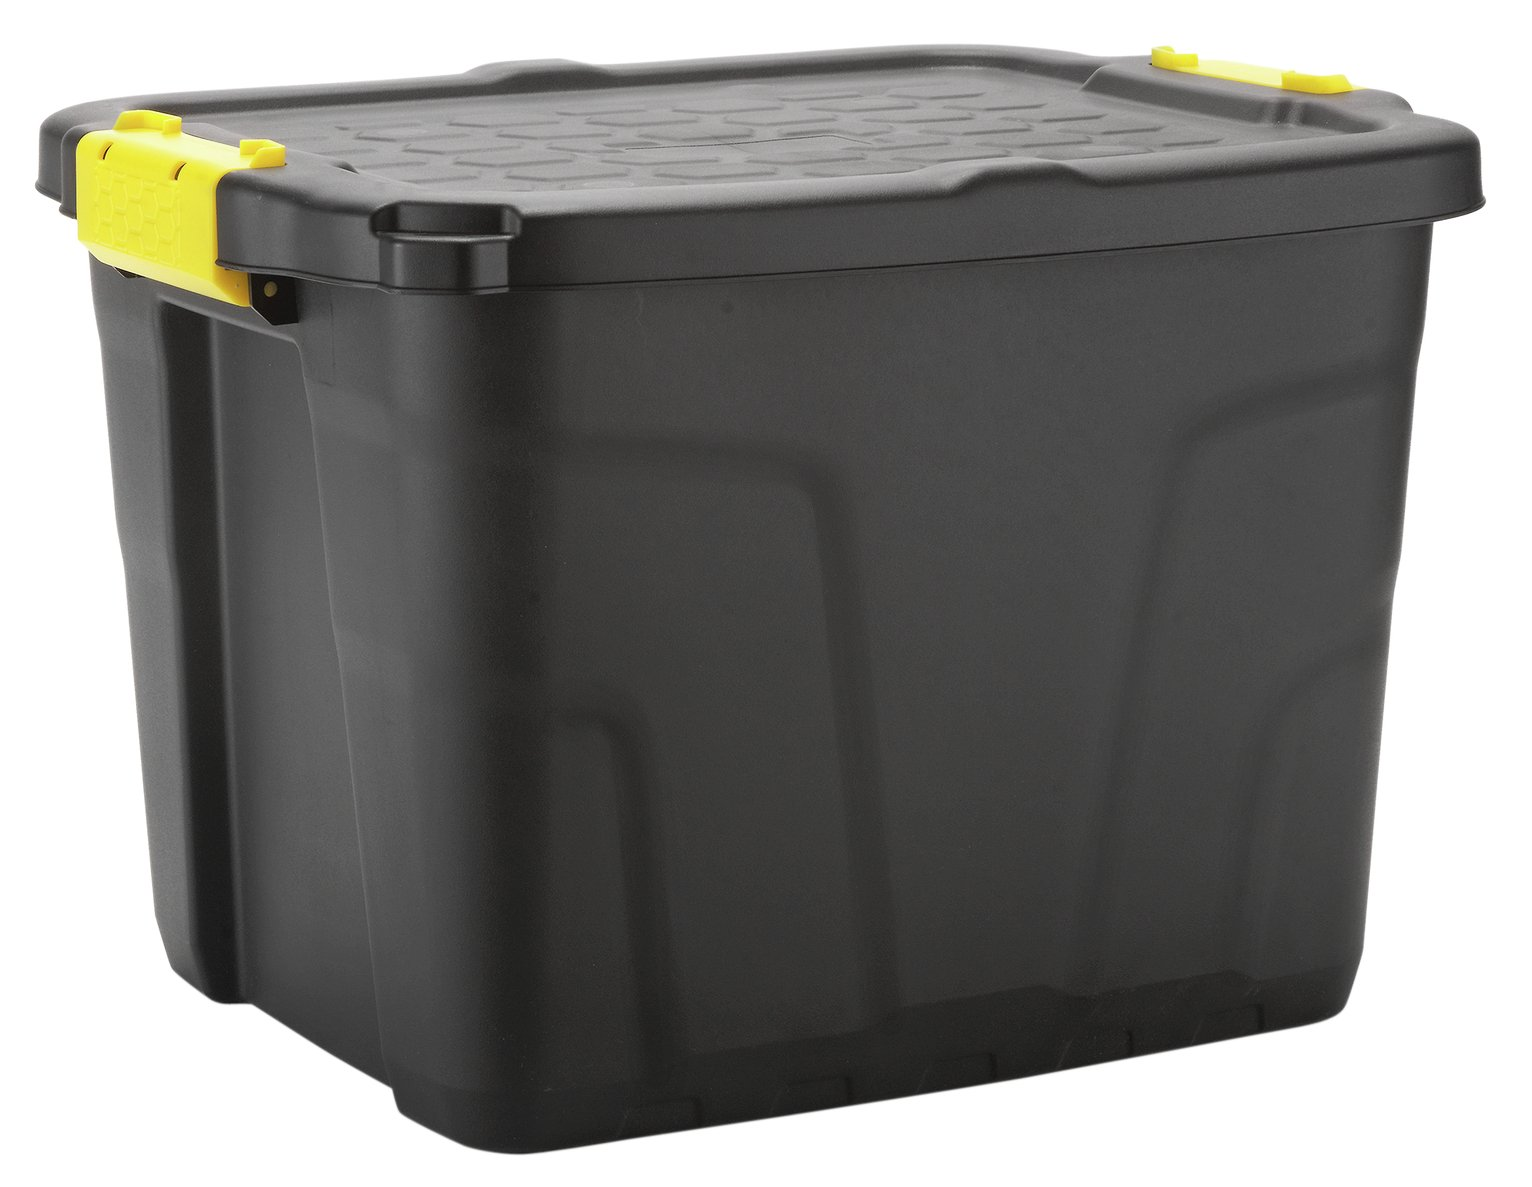 Buy Argos Home 42 Litre Heavy Duty Plastic Storage Box and Lid